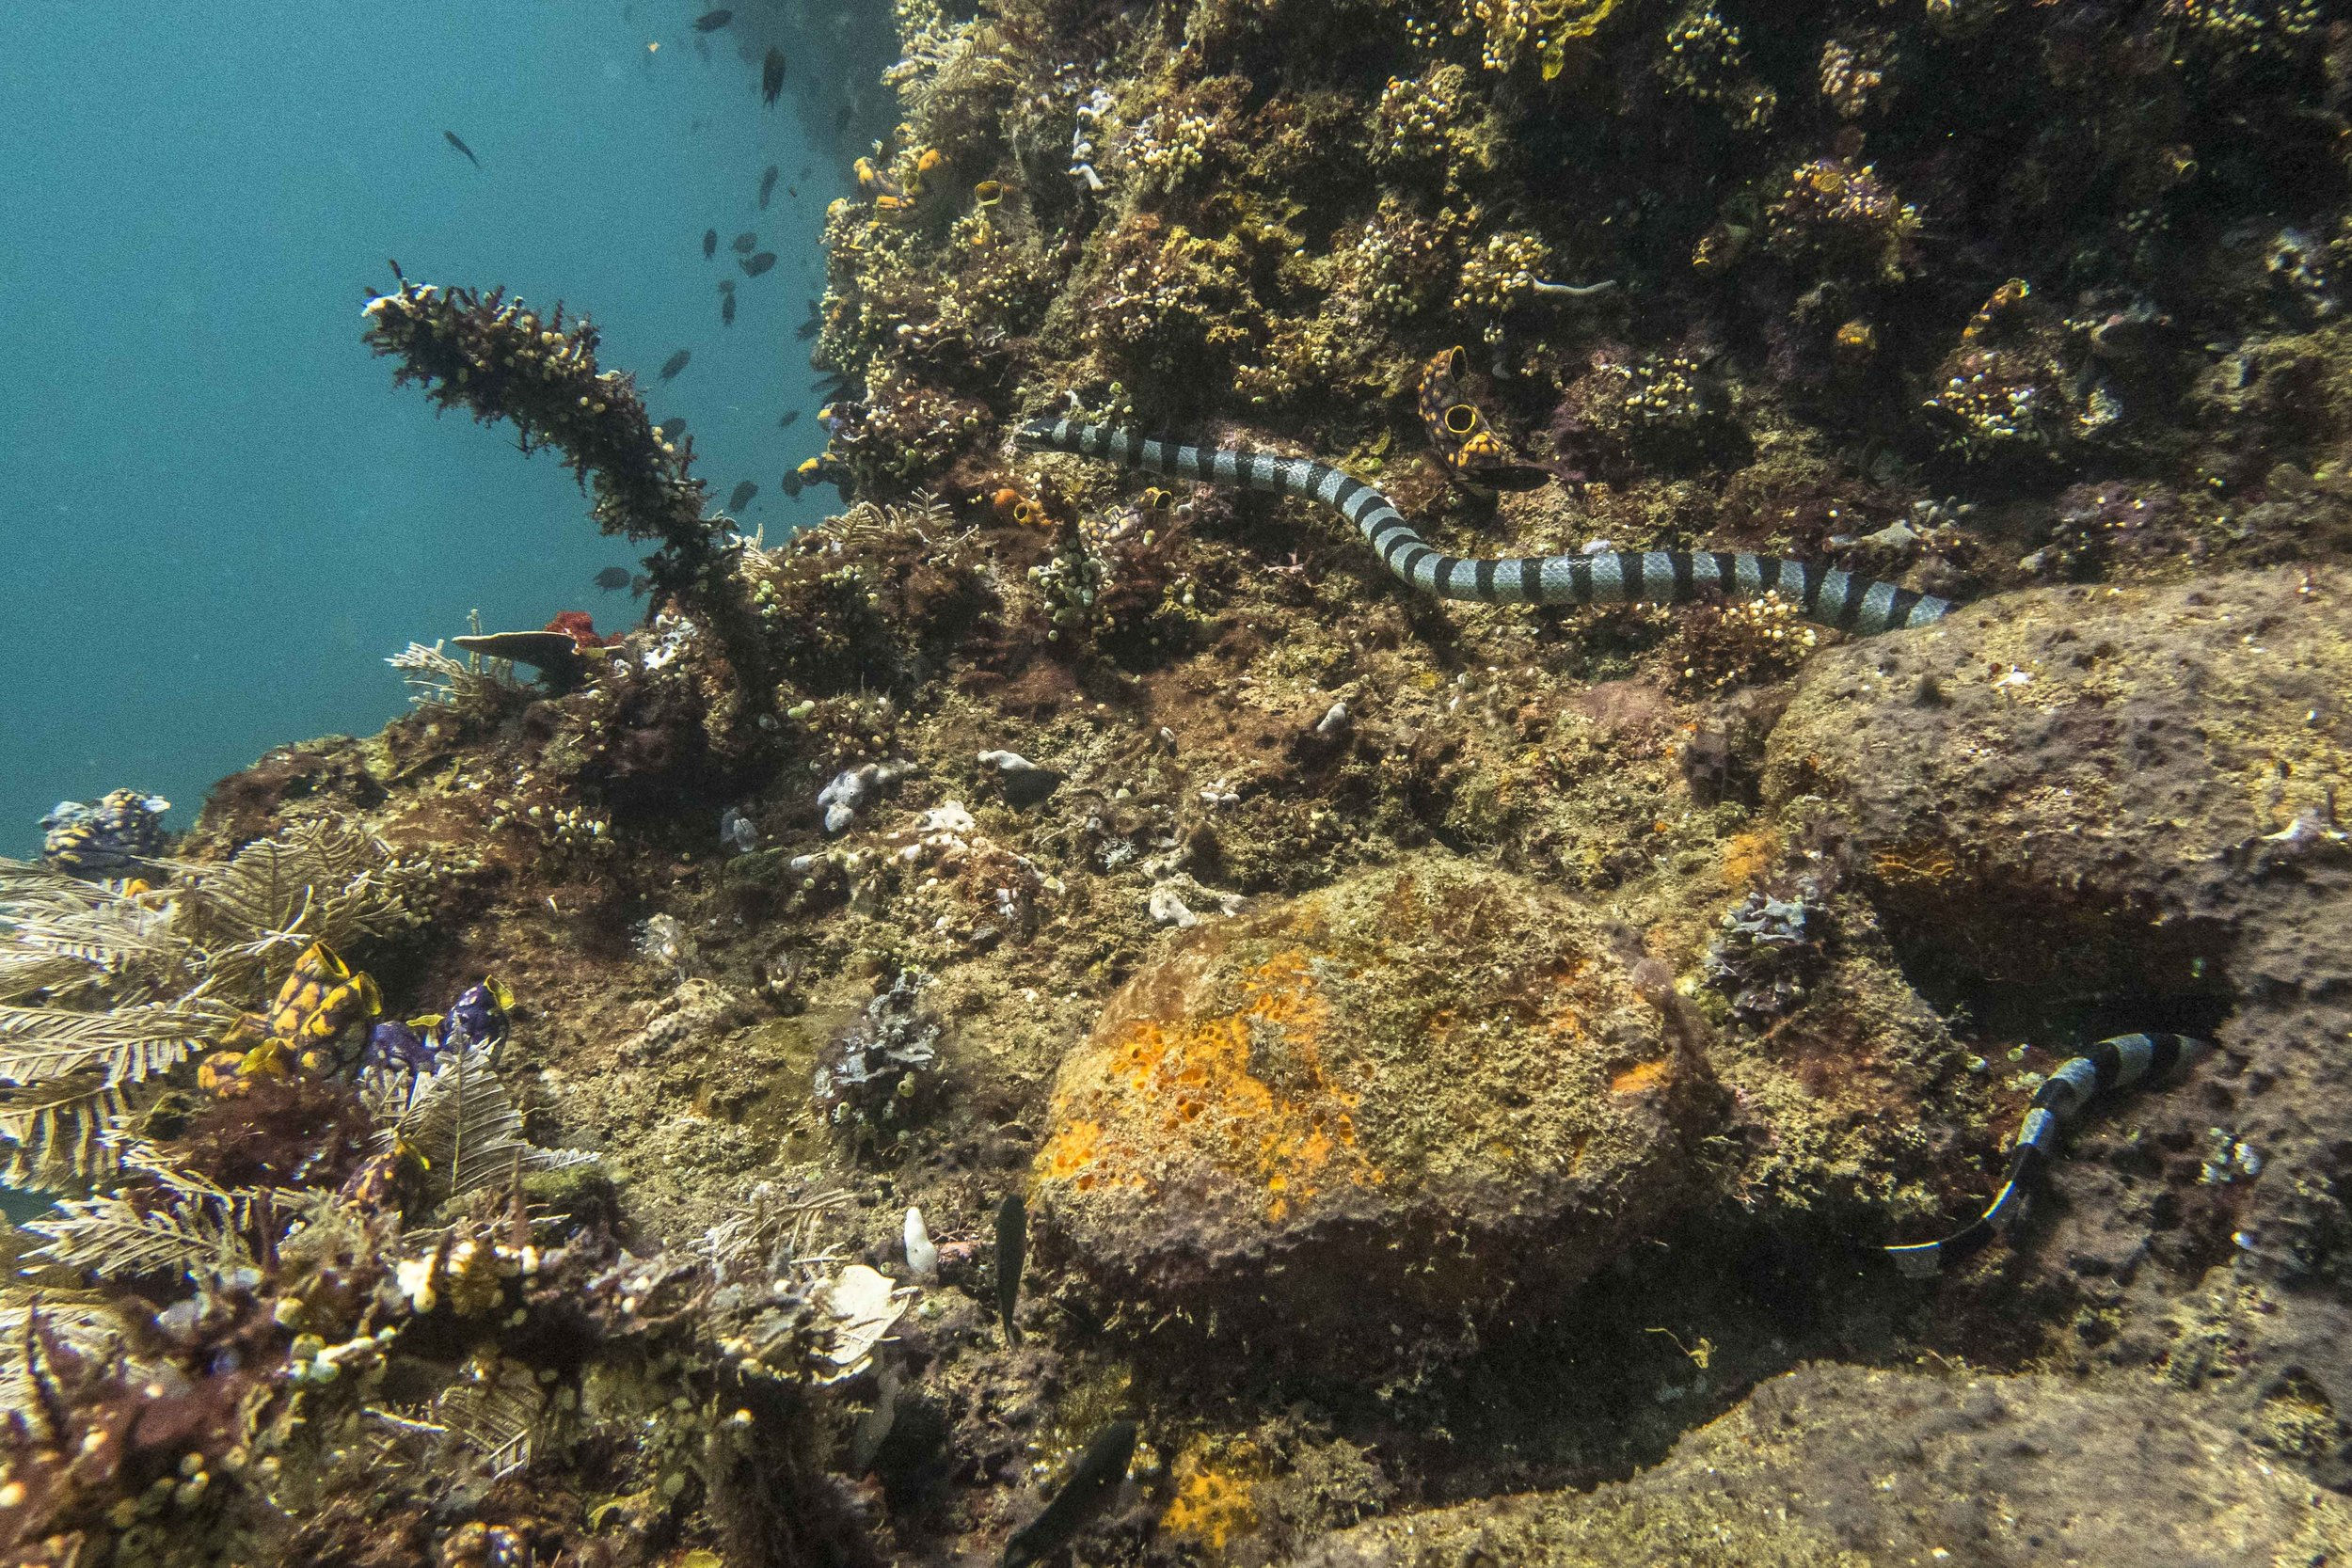 """yellow-lipped sea krait (Laticauda colubrina) - This snake, known more commonly as the banded sea krait, is a common presence in the waters of Raja Ampat Marine Park. Although they are known to be highly venomous, they rarely choose to attack humans, even when provoked. Despite the fact that it's a sea snake, this species spends a substantial part of its time on land or hunting in shallow waters along the shores and needs to occasionally find sources of fresh water for drinking. Banded sea kraits are widespread in the Western Pacific and Eastern Indian Oceans, and studies done in Fiji have shown that they develop an attachment to their """"home"""" islands to which they always return for mating, digesting and sloughing (skin shedding)."""